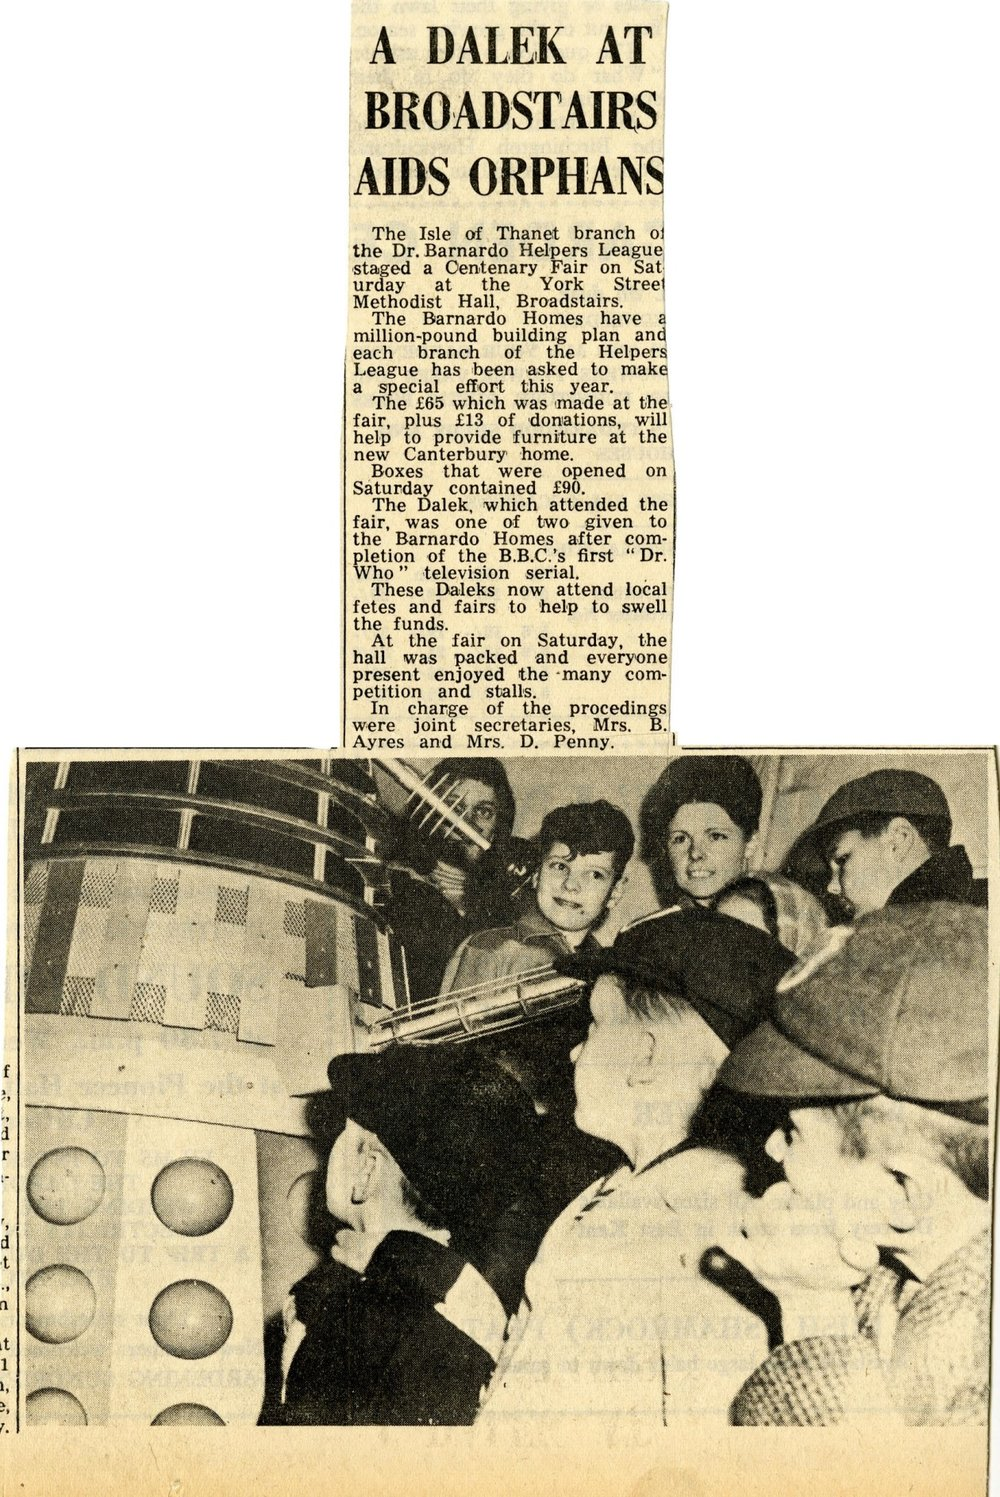 Article about the Dr. Barnardo's Daleks in an unknown Kent newspaper (date unknown).